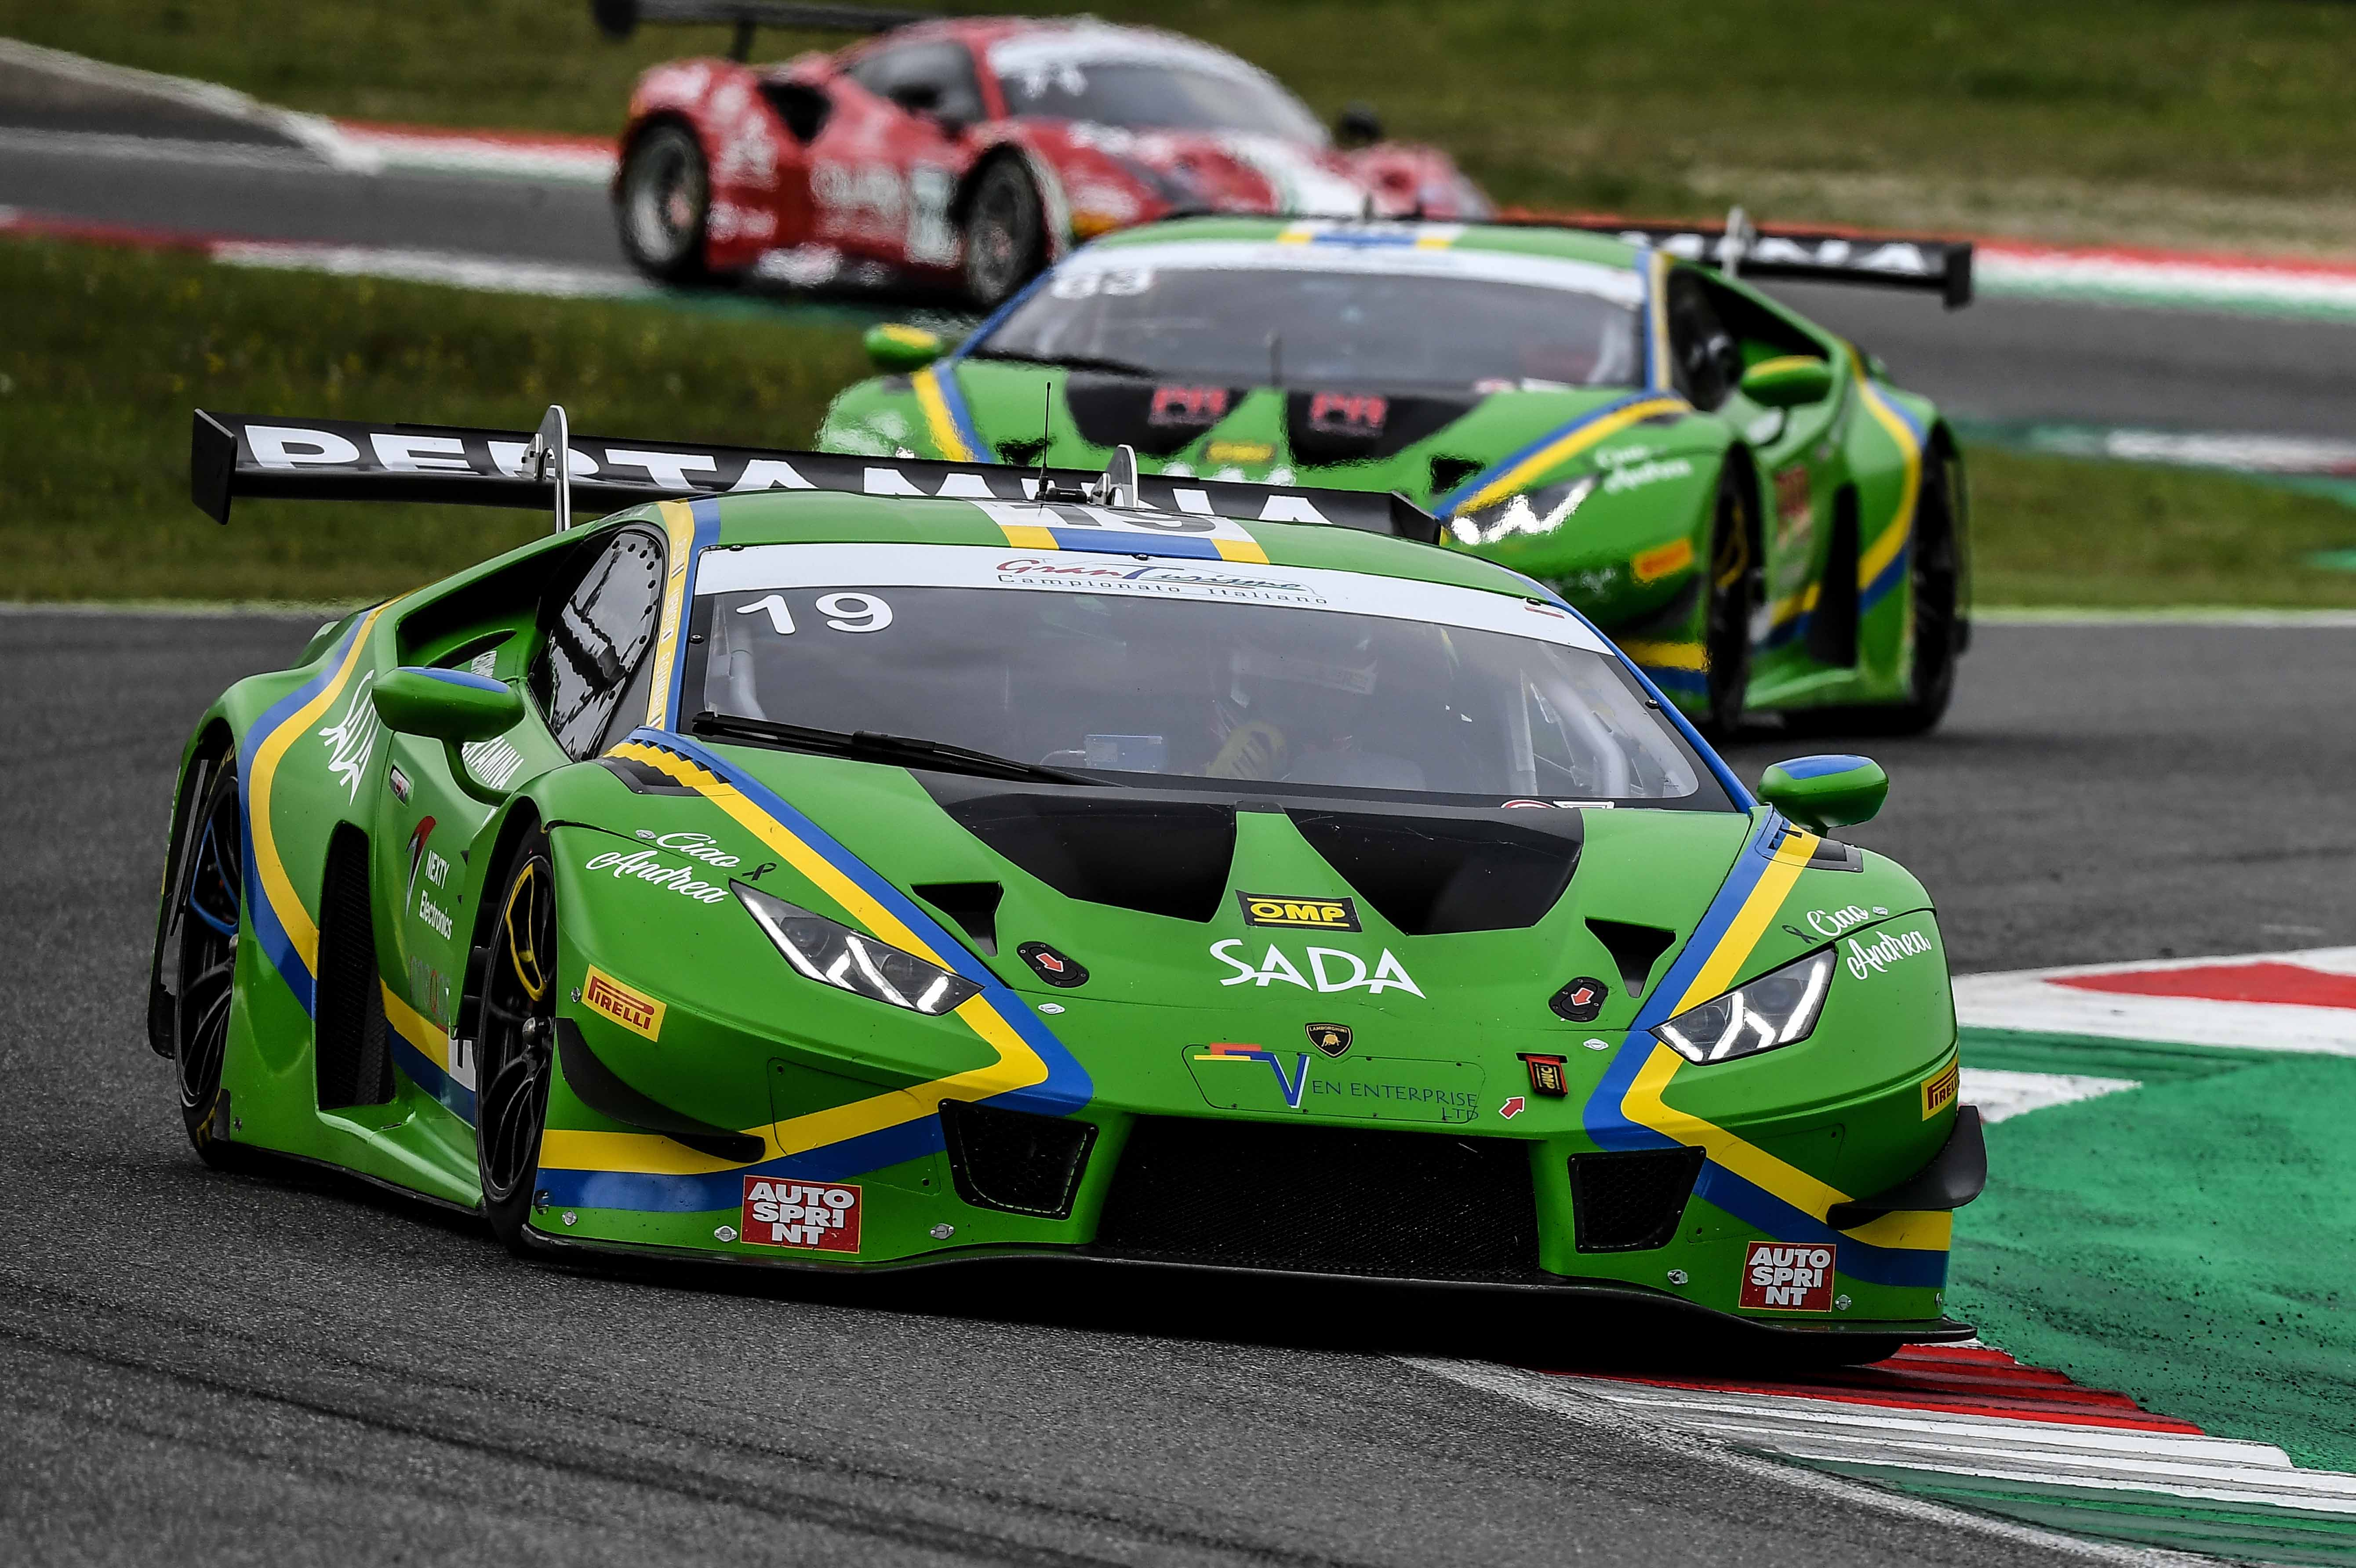 MUGELLO PODIUMS FOR BOTH VSR LAMBORGHINIS